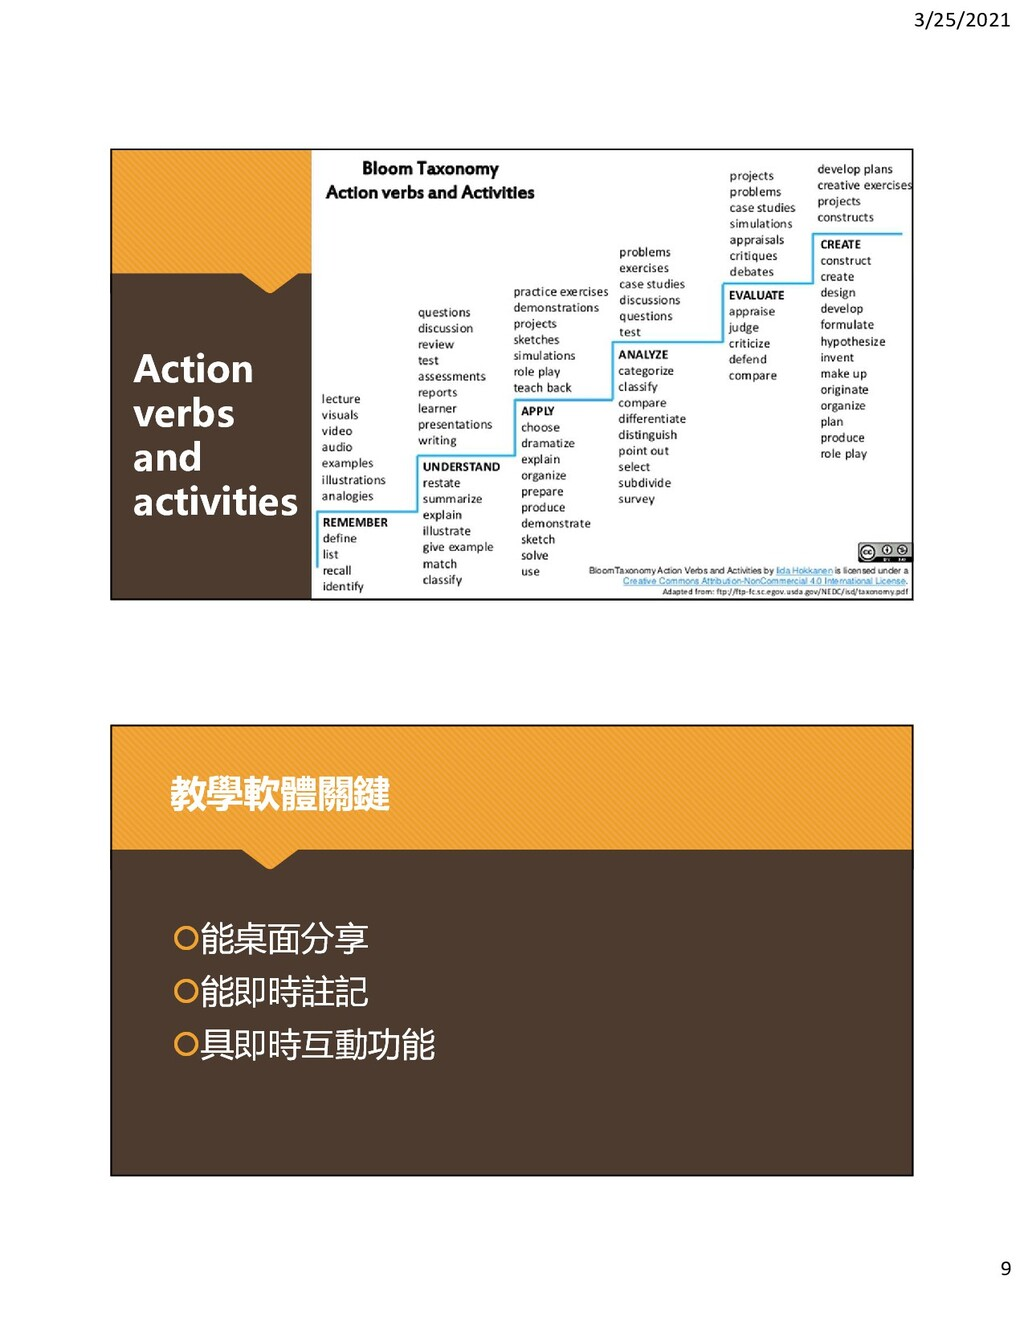 3/25/2021 9 Action verbs and activities Action ...